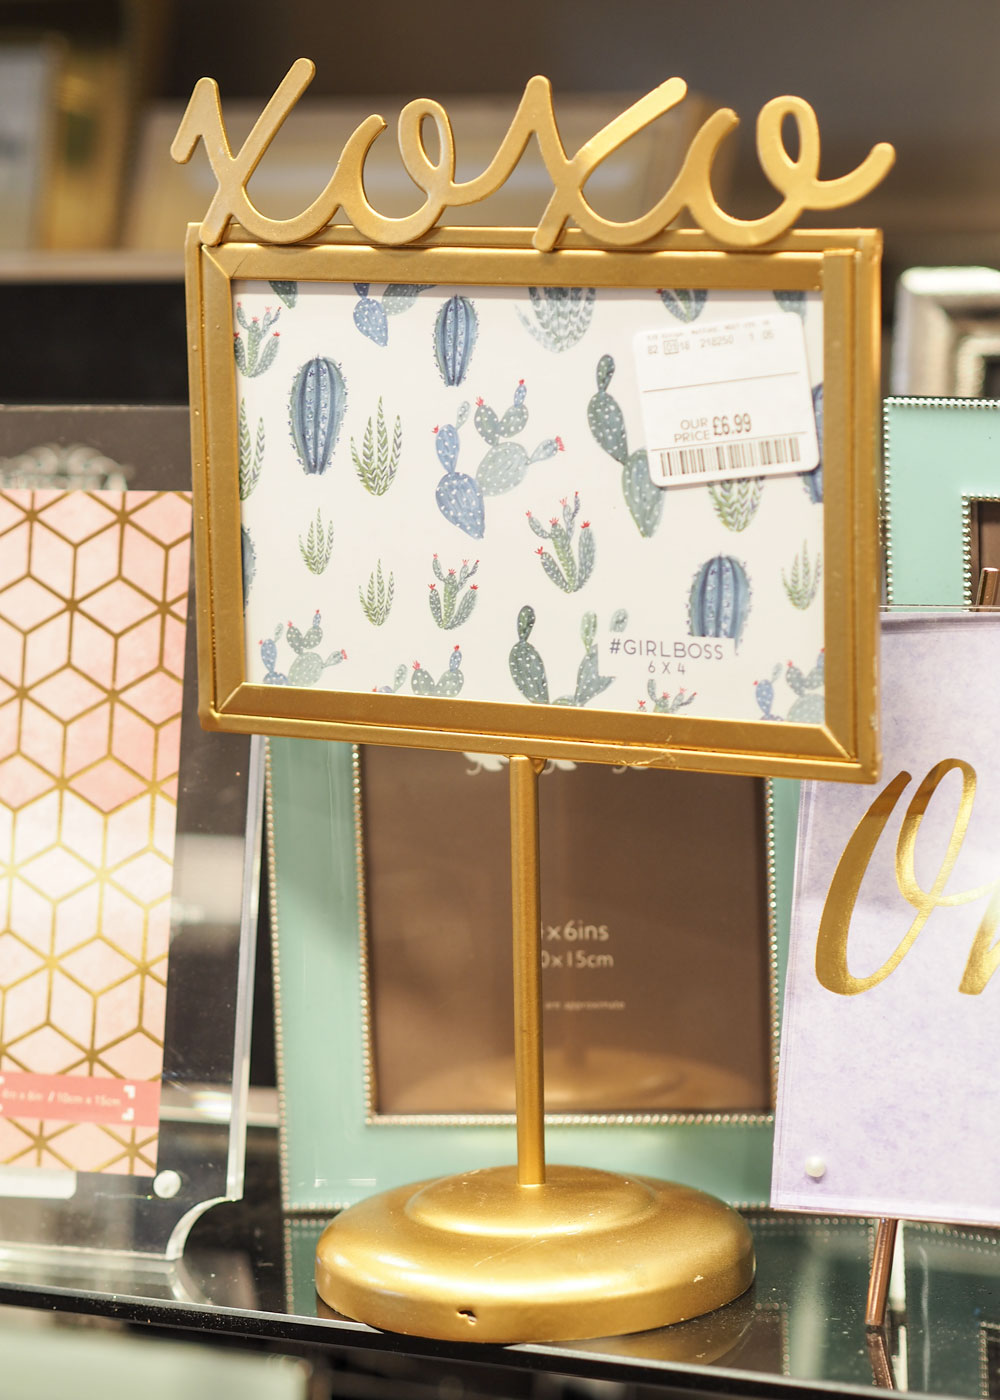 The Guiseley Homesense store opened earlier this year and today I'm showing you why this store is perfect for all your Christmas buying needs.